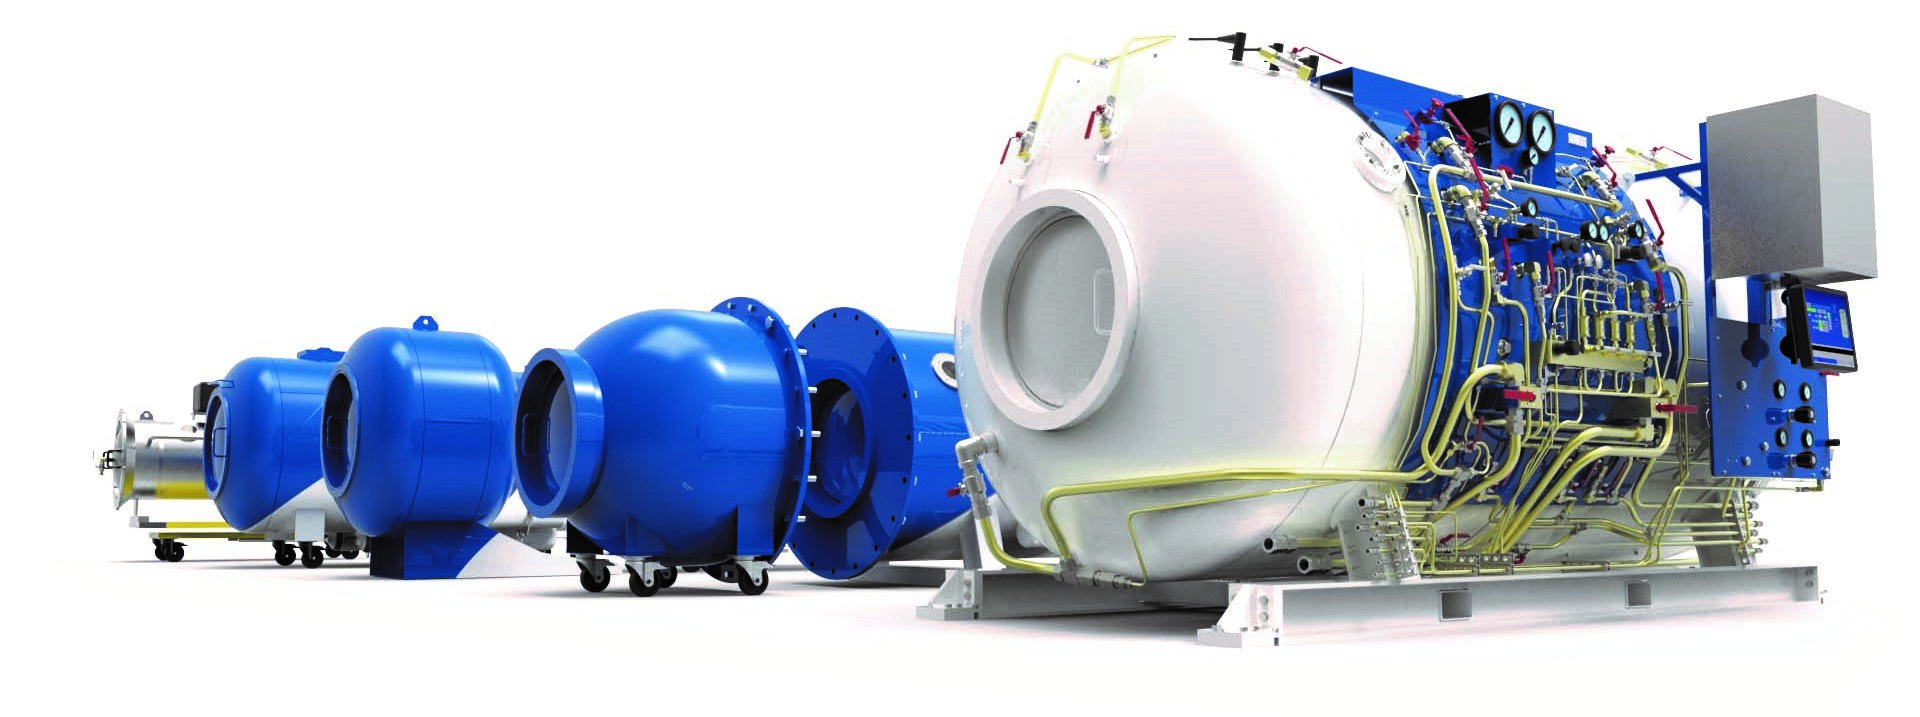 Big diving chamber. Different types of hyperbaric